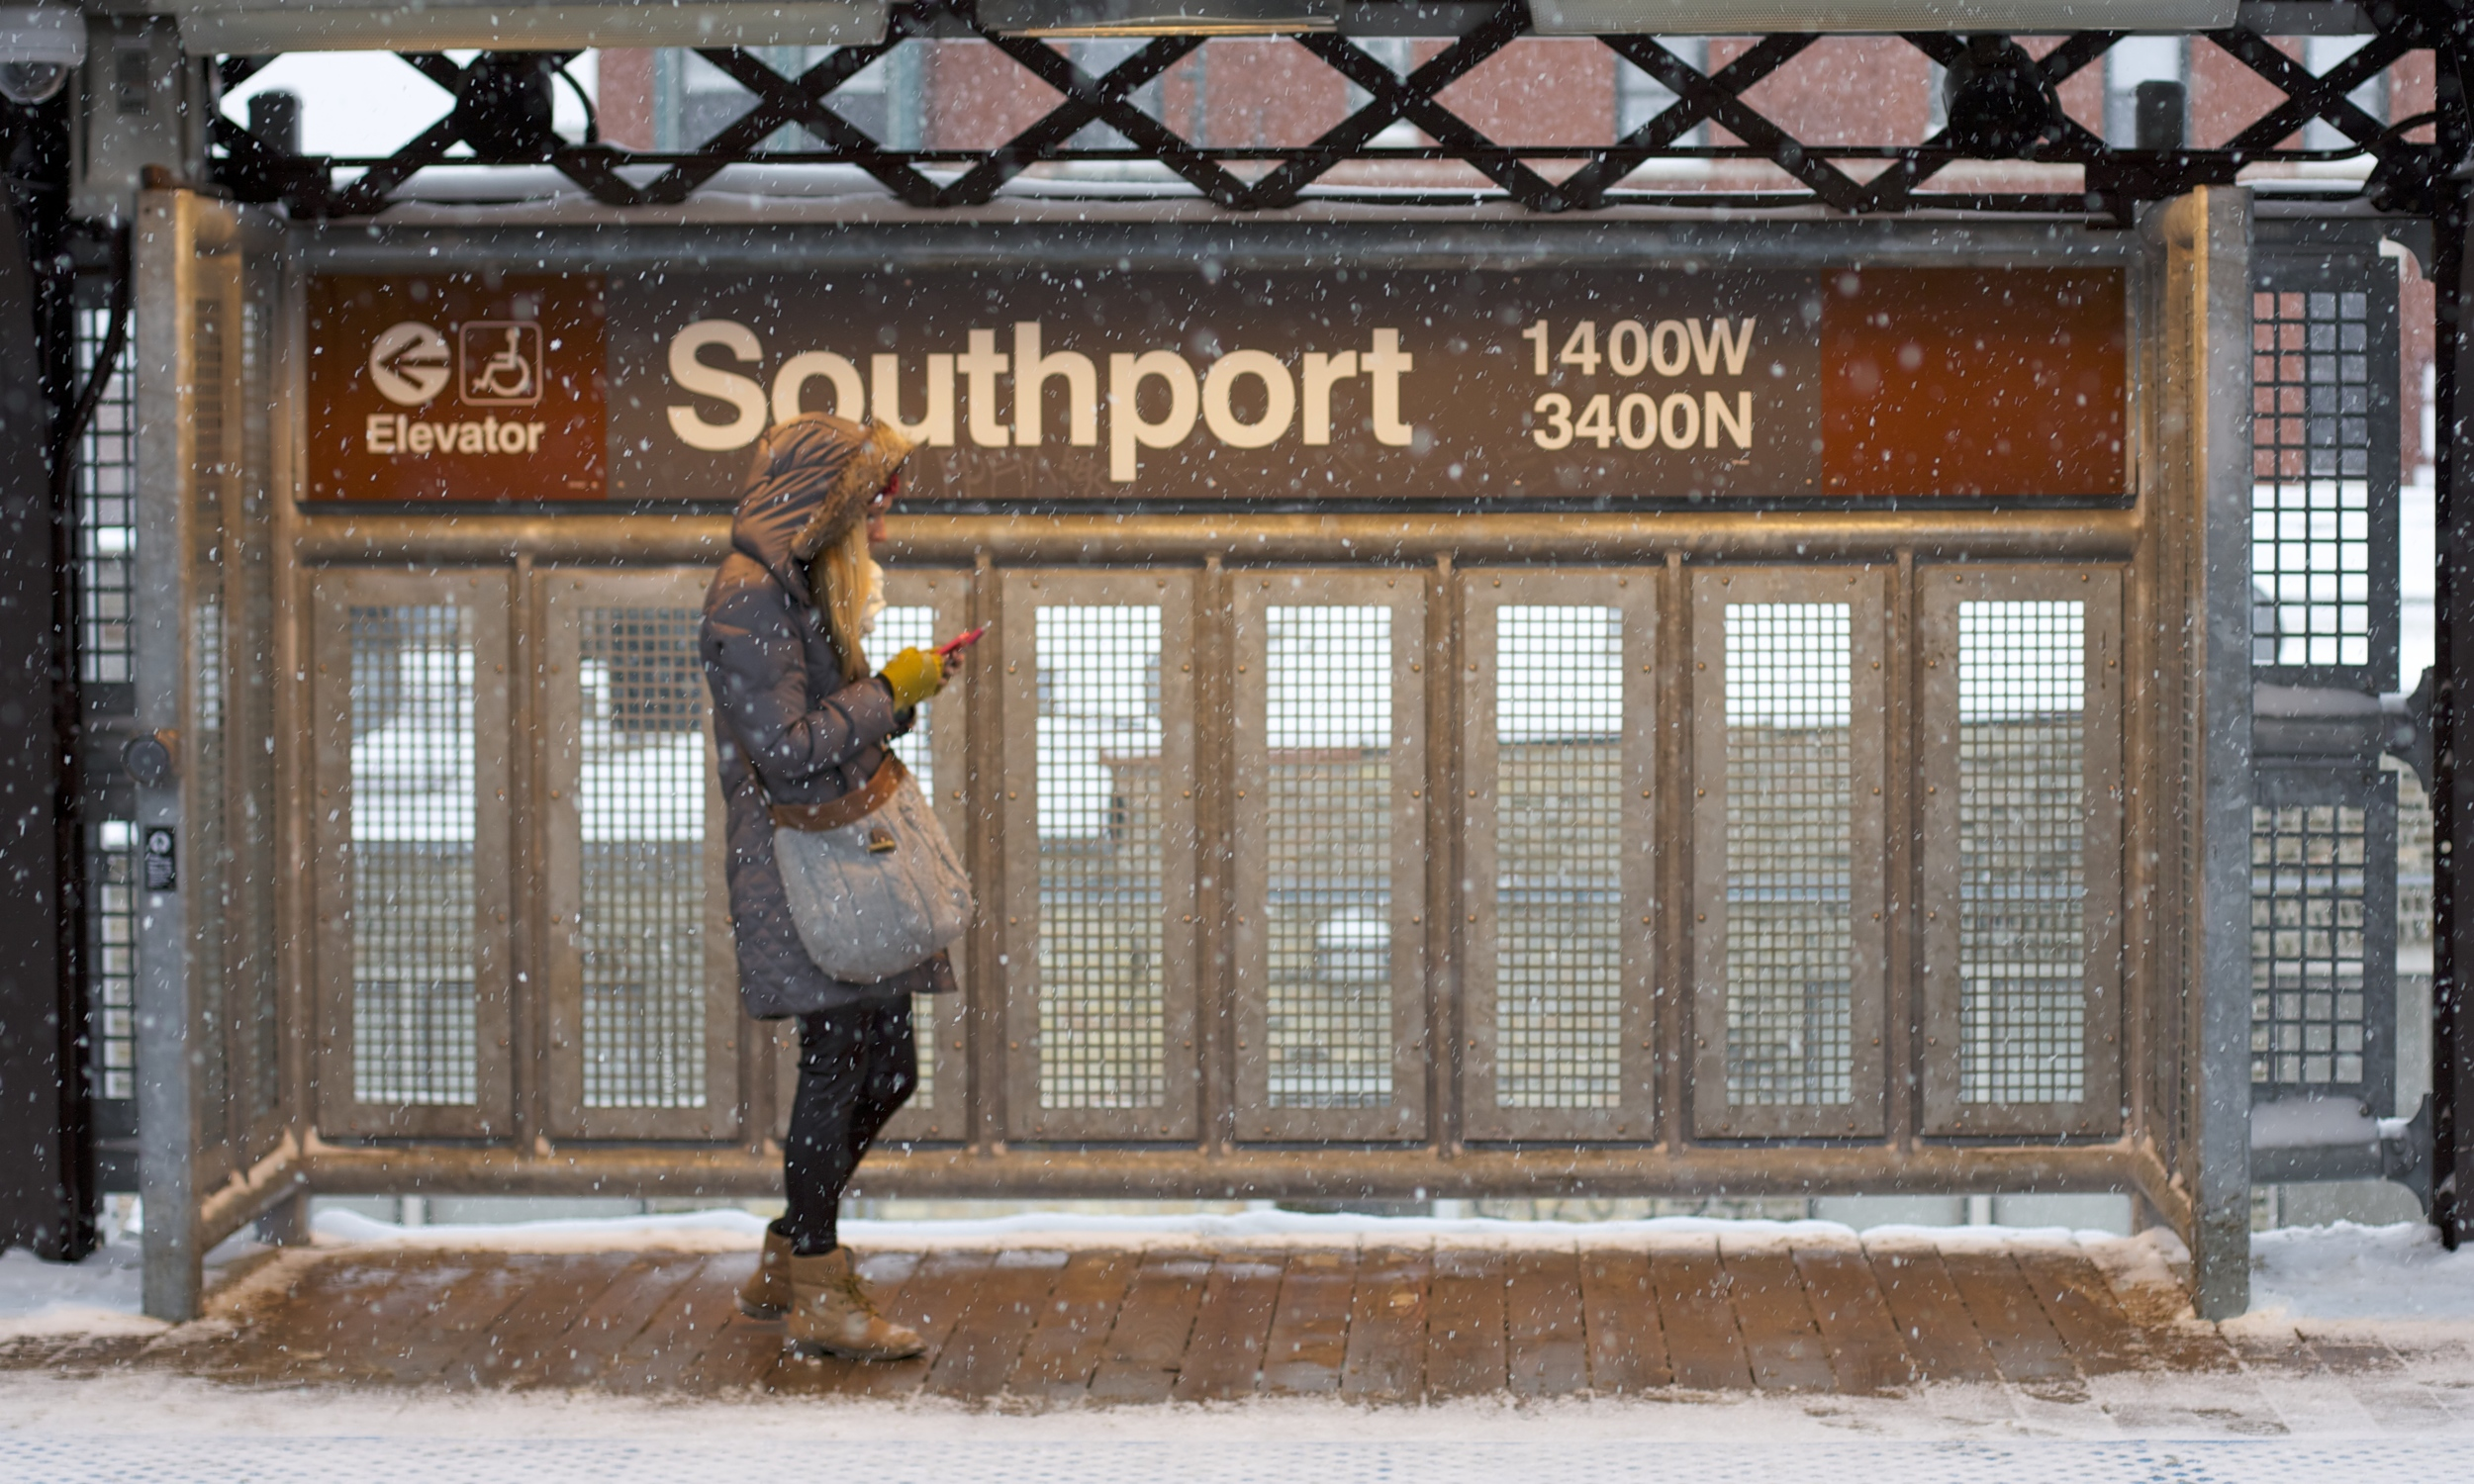 A woman check her phone in the Southport Station warming box as the snow falls